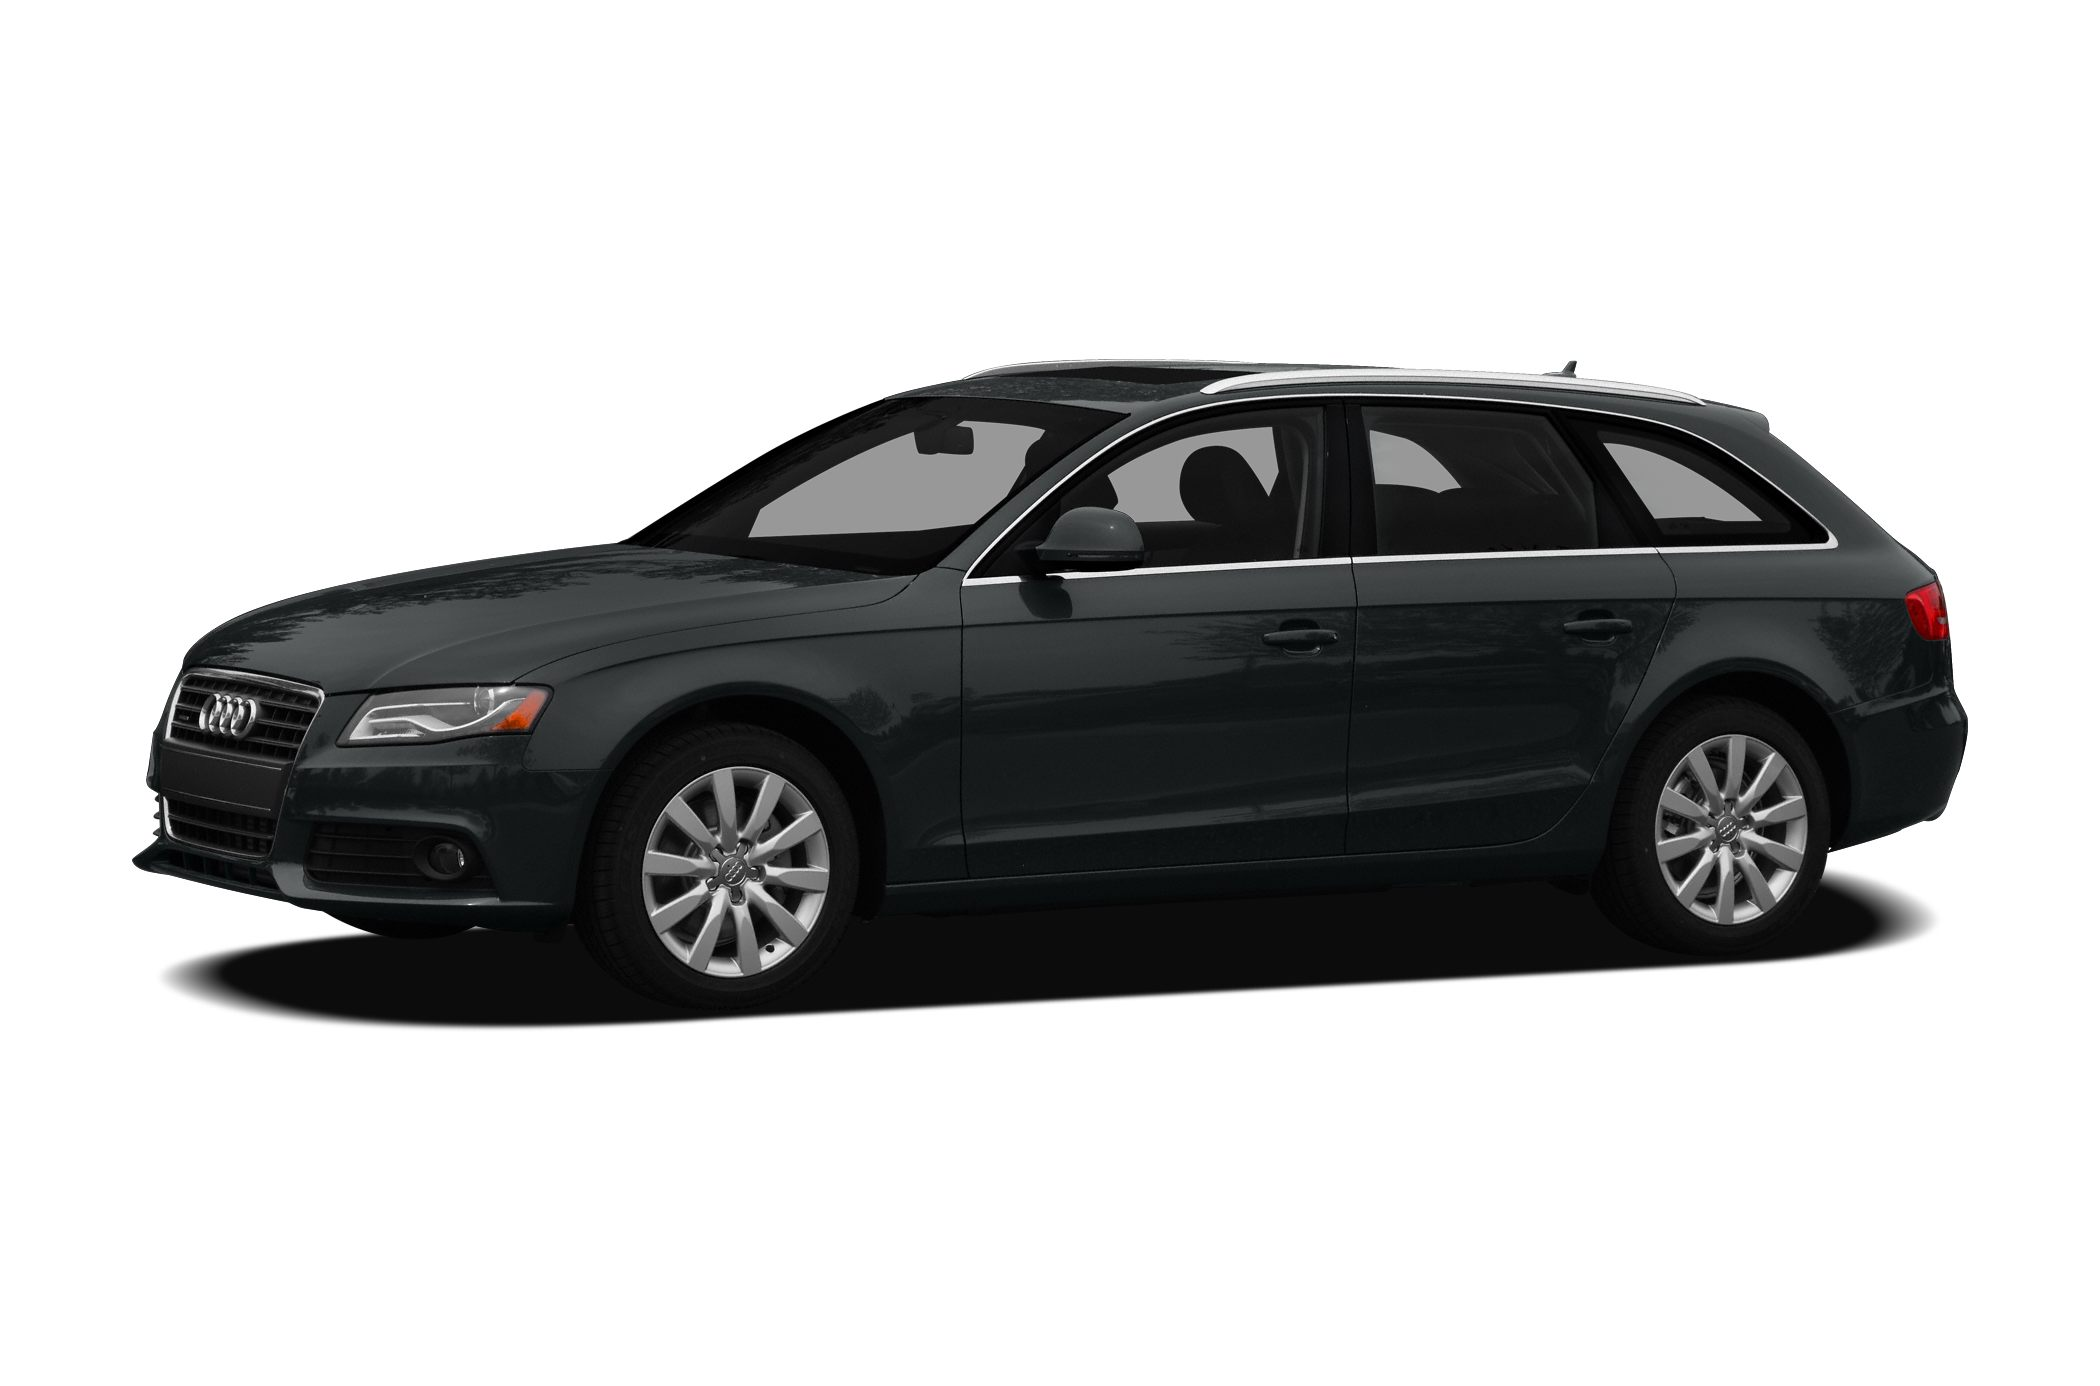 2009 Audi A4 2 0T Avant Premium 4dr All wheel Drive quattro Station